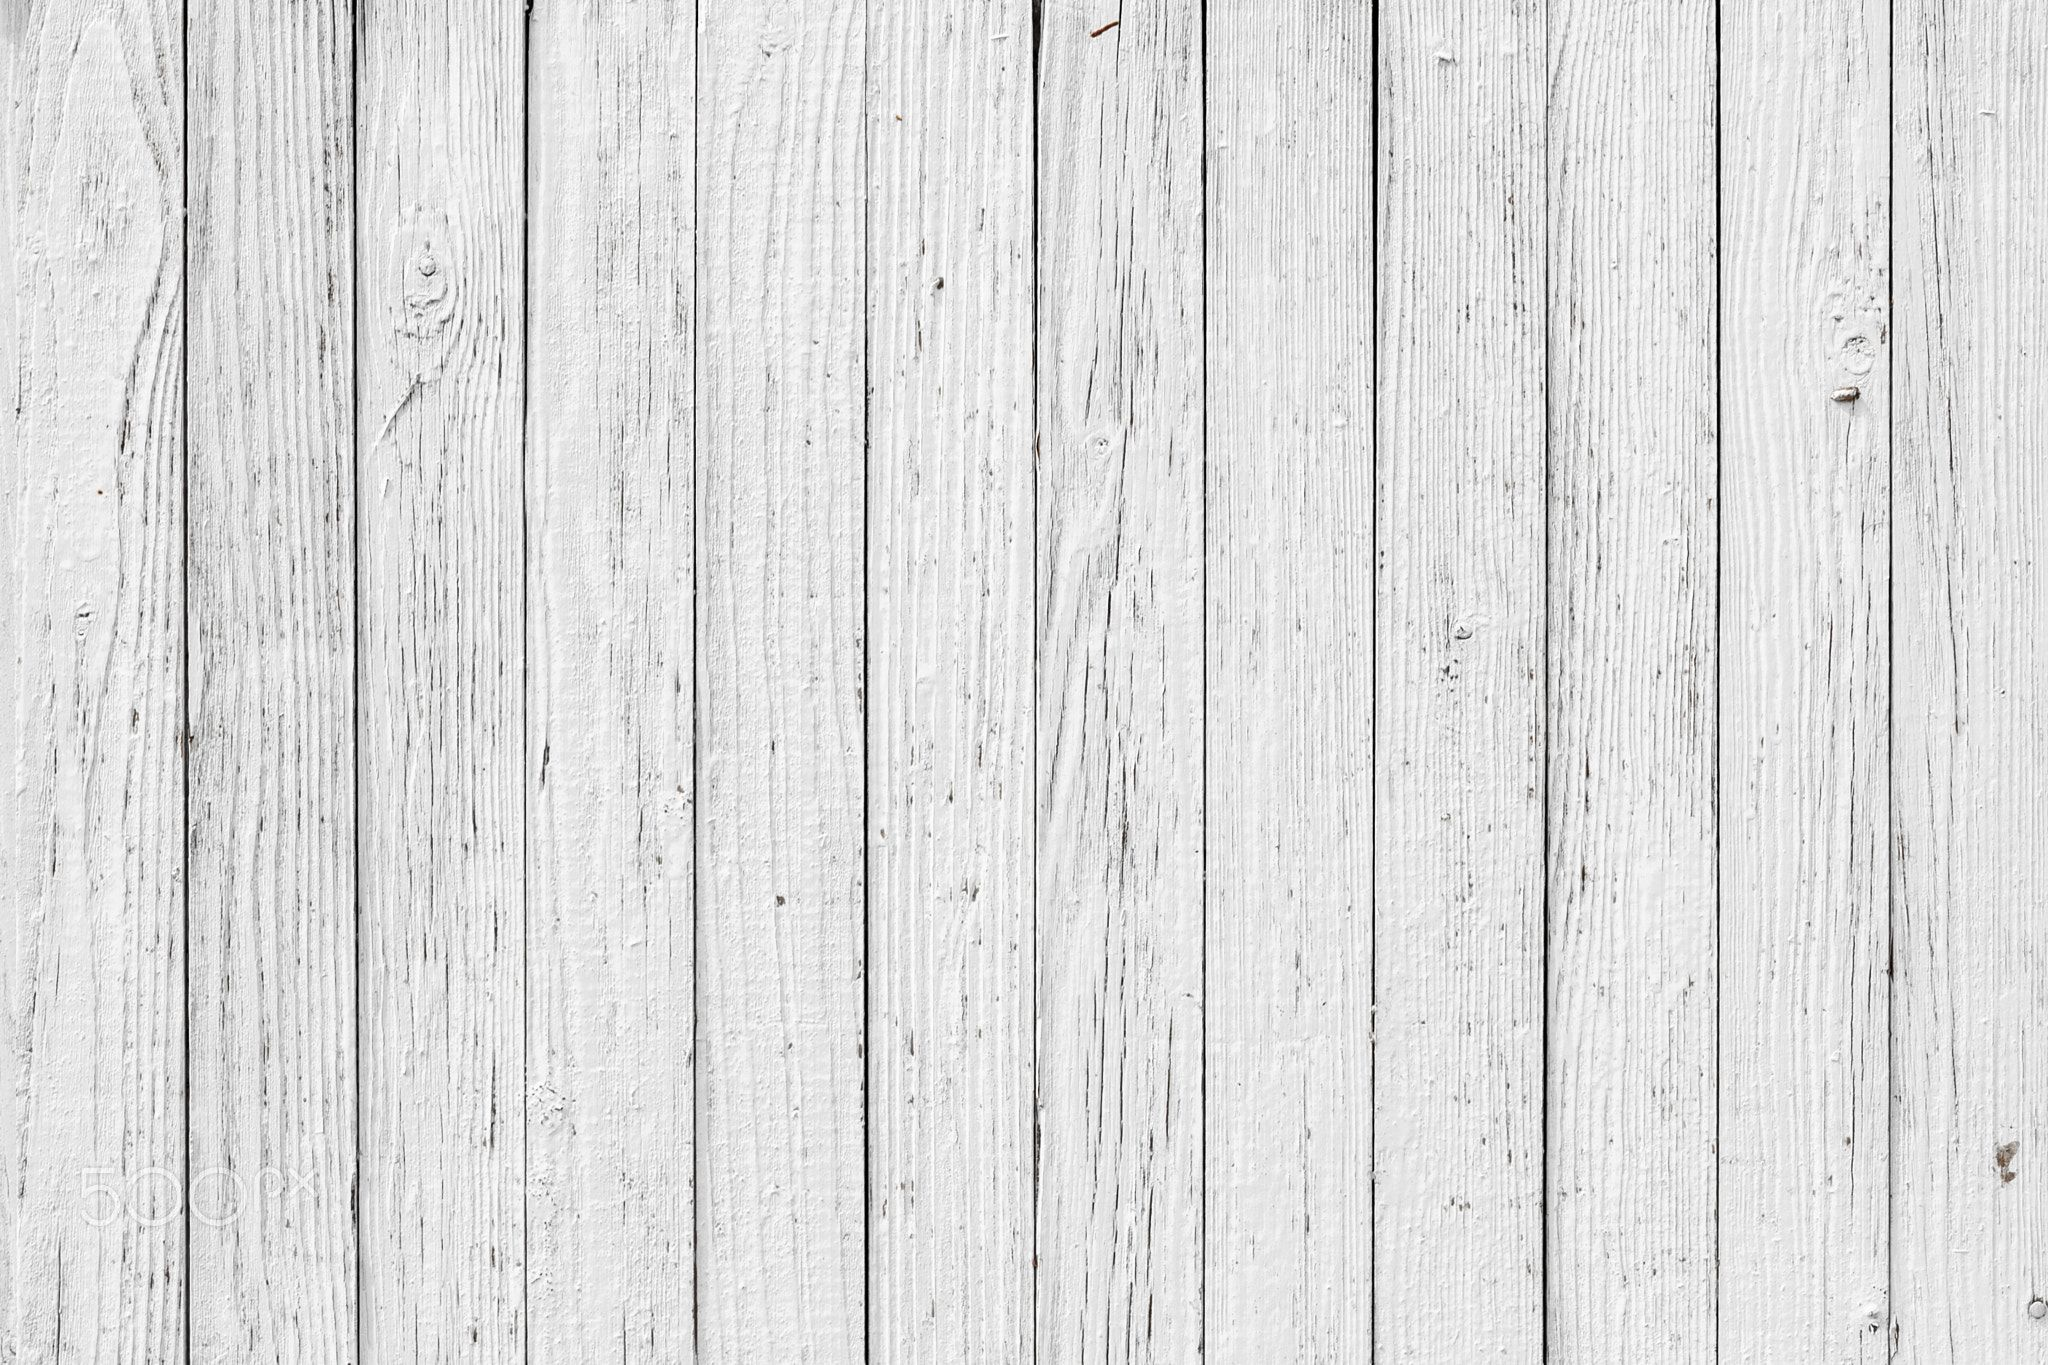 White Wood Texture Background It Is A Conceptual Or Metaphor Wall Banner Grunge Material Aged Rus White Wood Texture Wood Texture Background Wood Texture